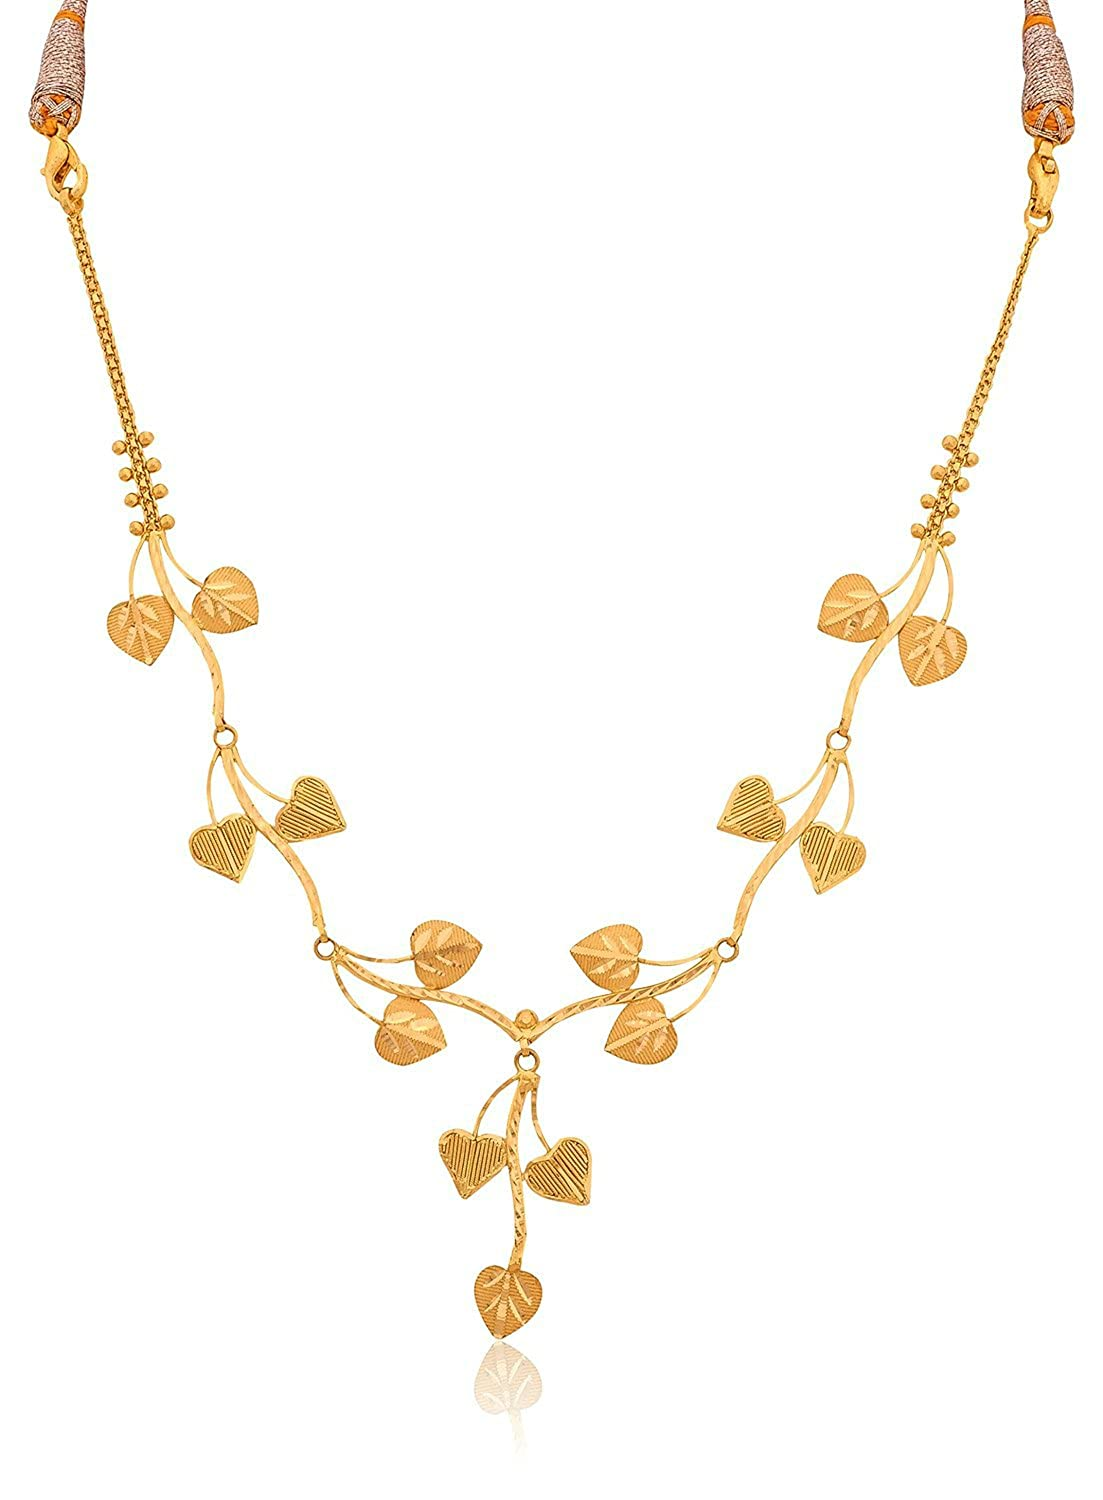 weight set light chain gold necklace jewel product collections